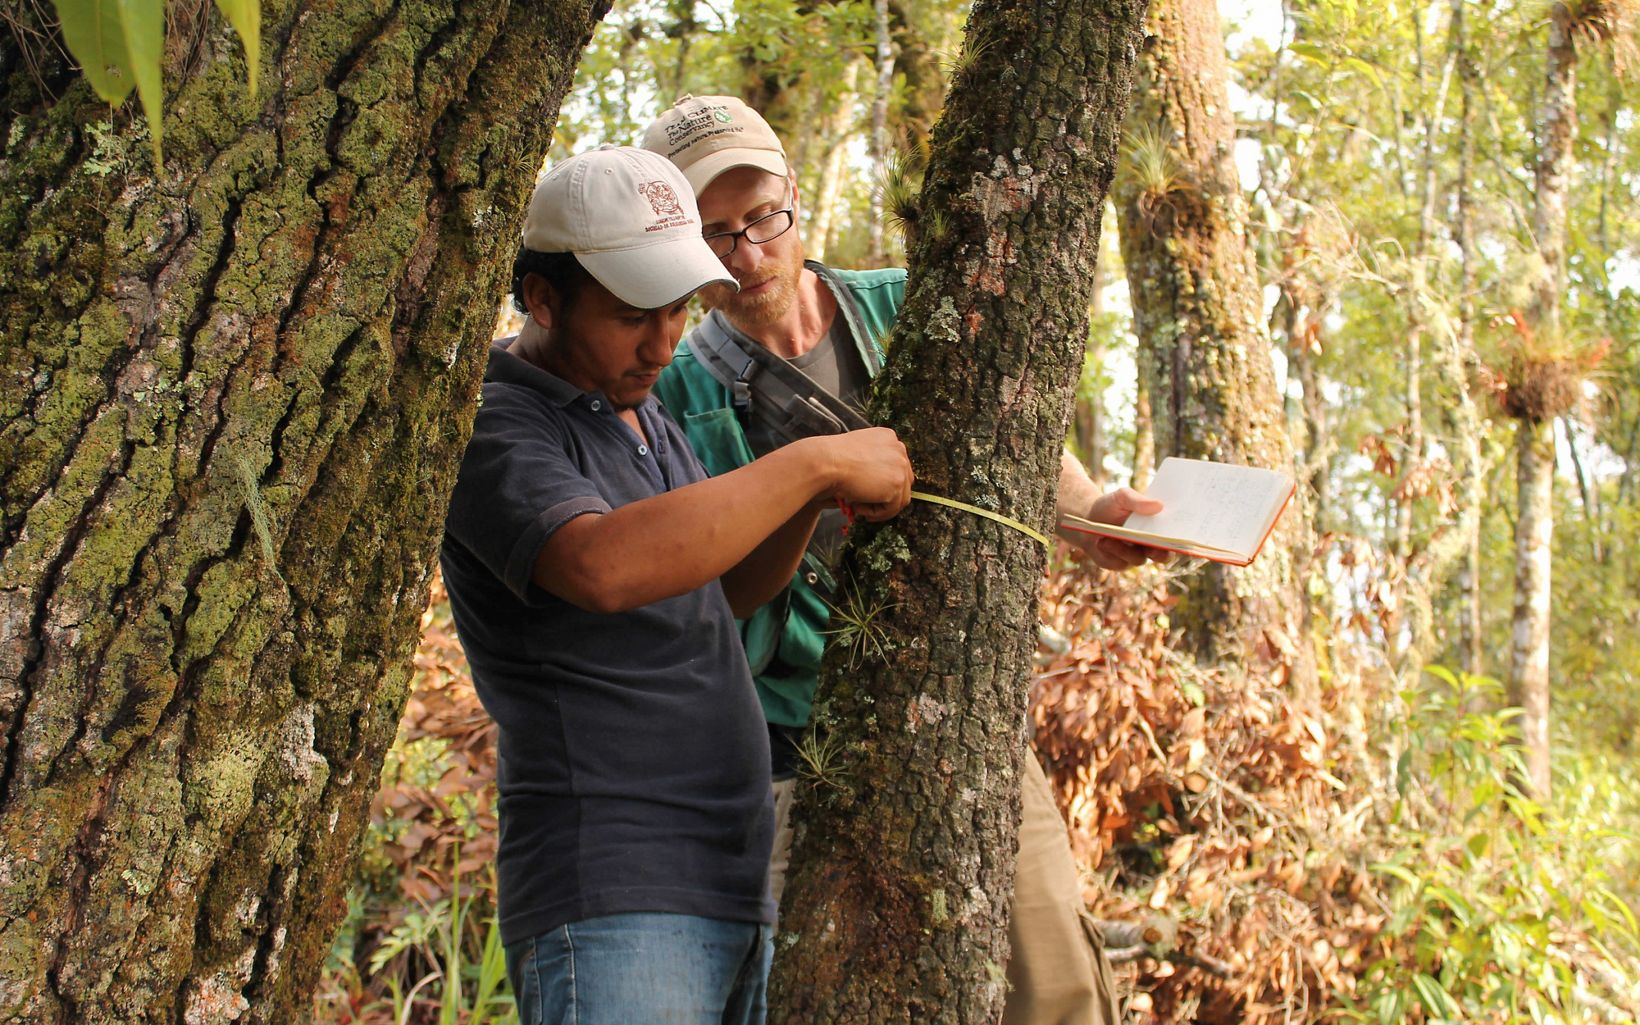 Peter Ellis works with a partner to implement sustainable logging practices in Mexico.